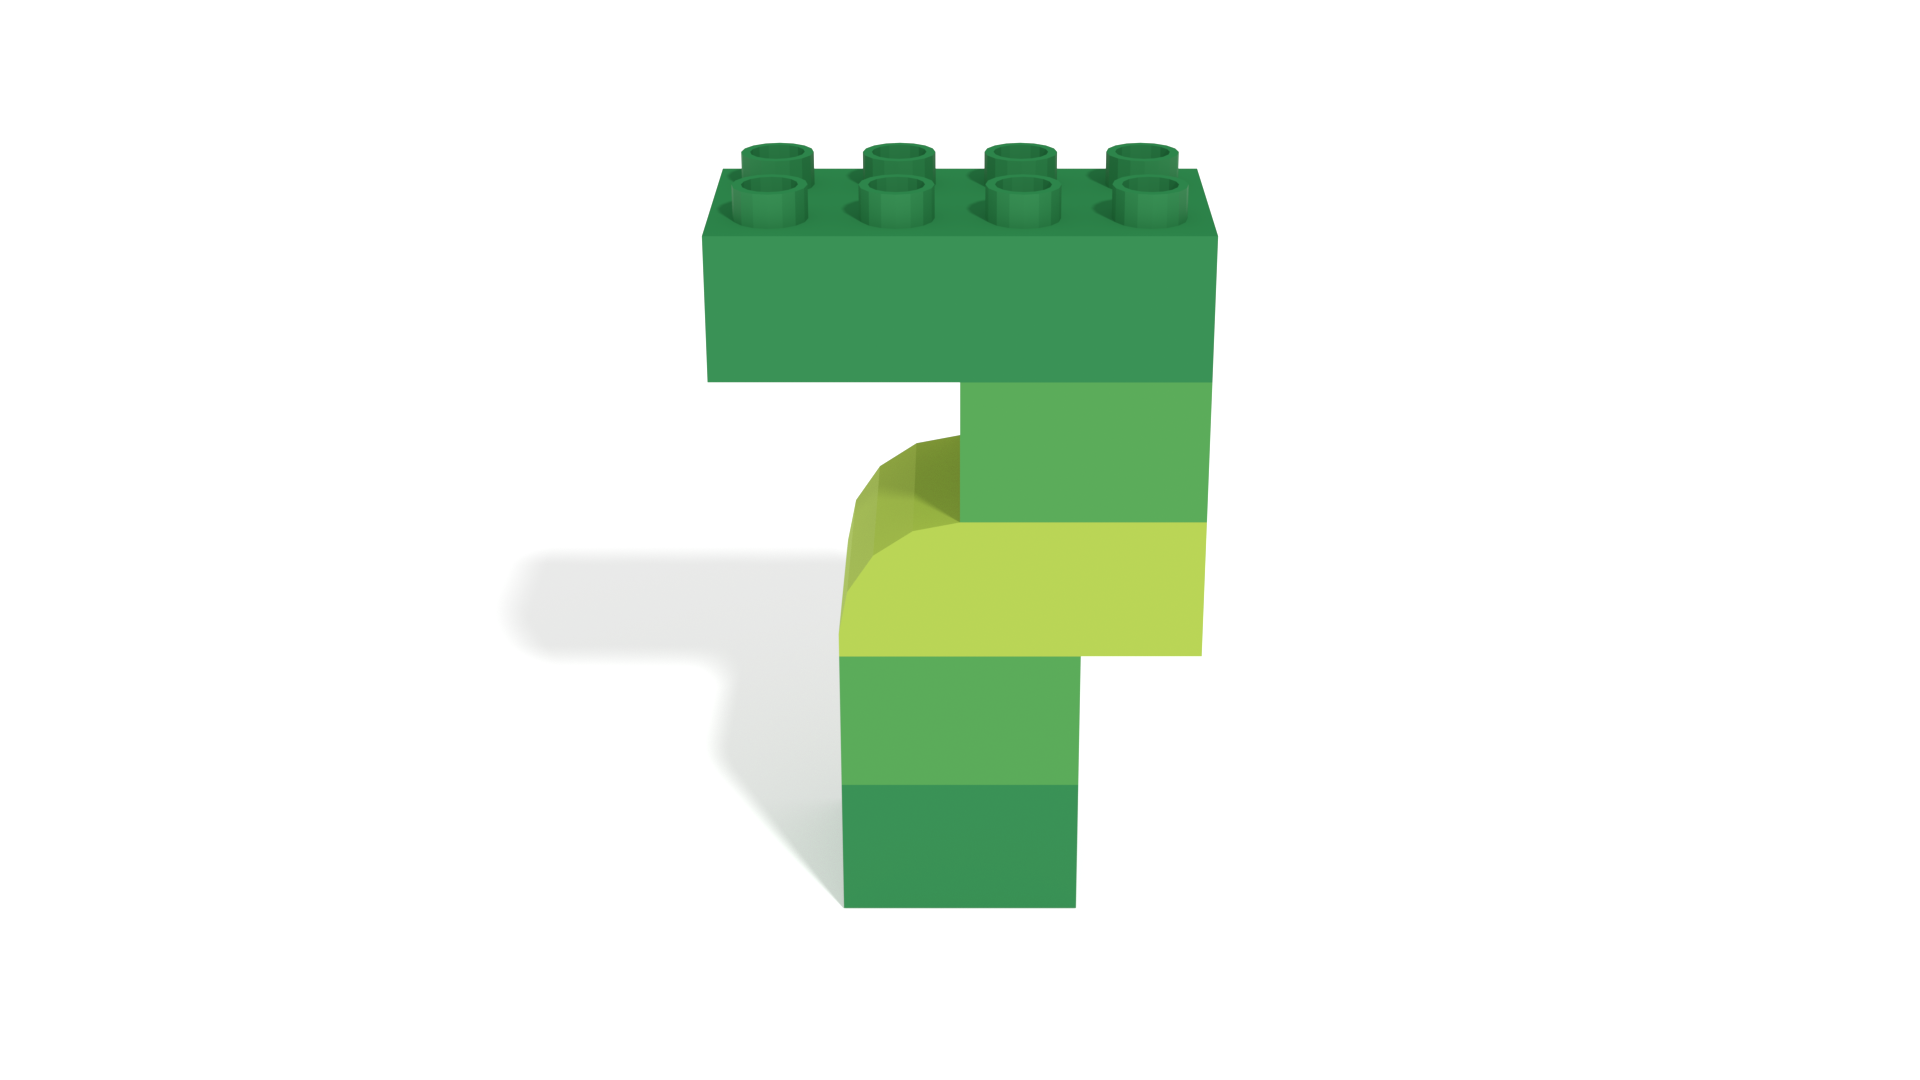 Image for LEGO Duplo Number Seven (7) from 40304 set in 3D building instructions